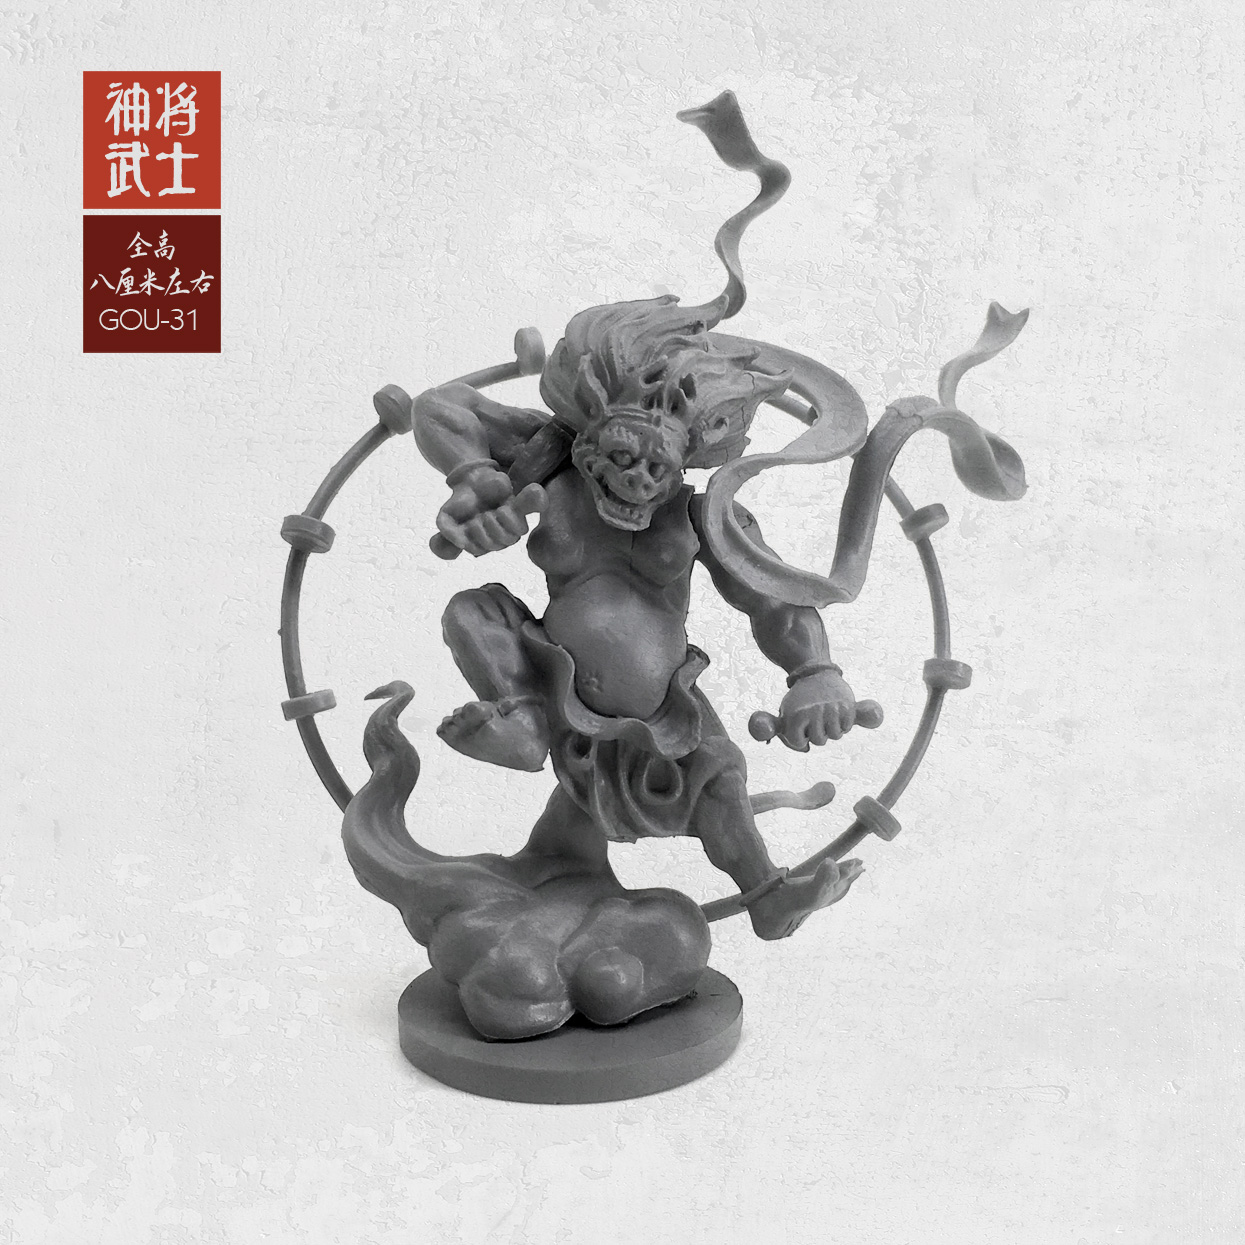 1/35 Figure Kits (50-60mm) Oriental Classical God Samurai Resin Soldier Gou-31